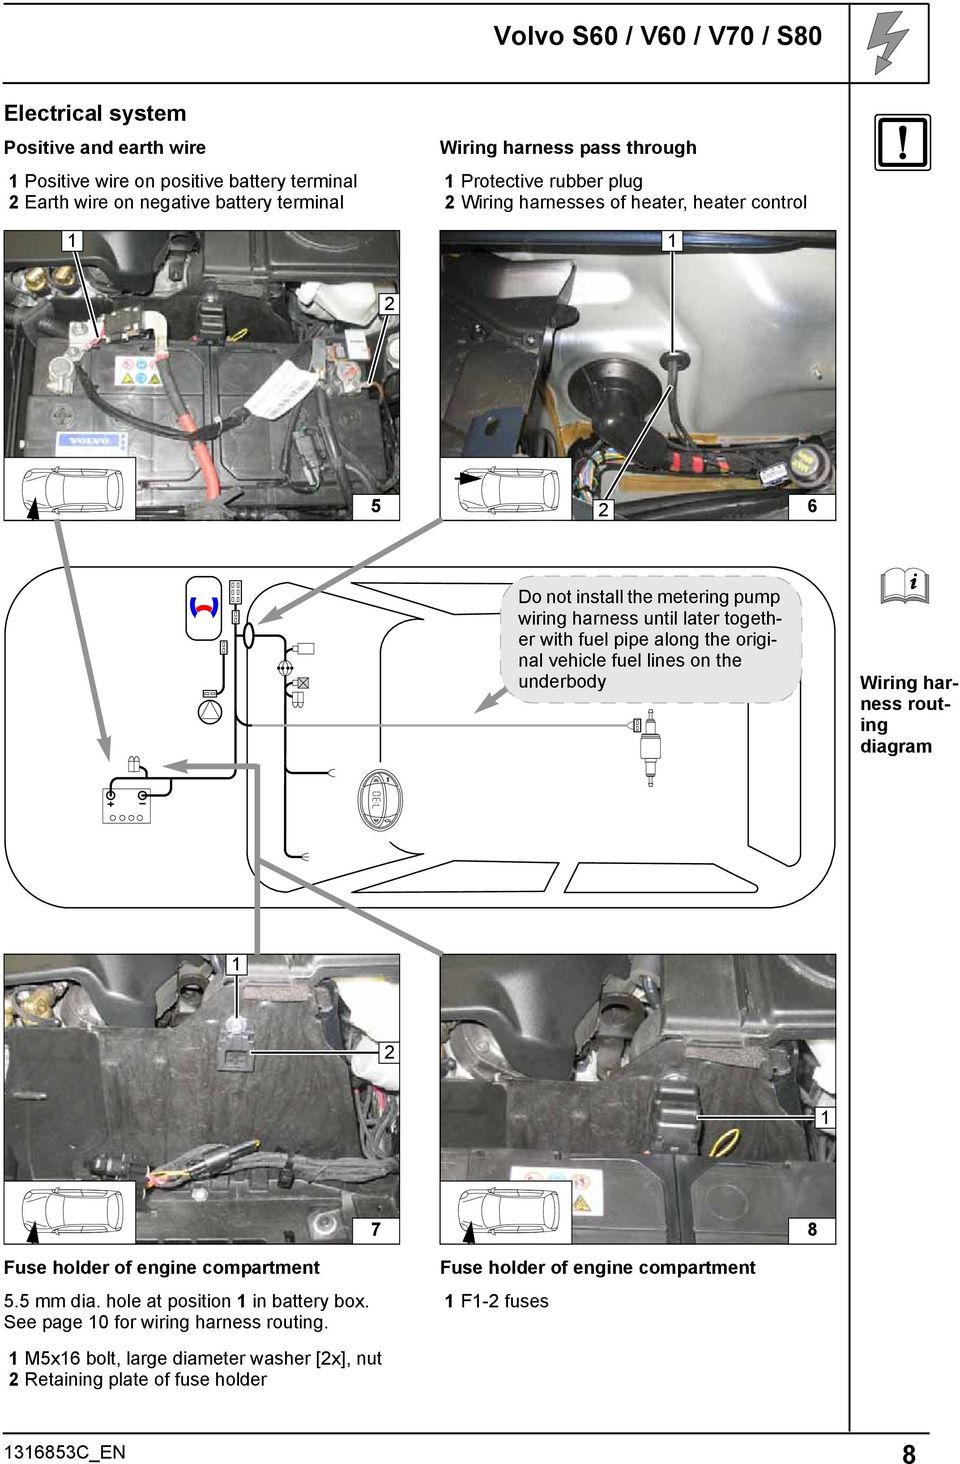 Taylor Dunn Wiring Harness Schematic Diagrams Battery Diagram 2003 Volvo V70 Trusted 3000gt